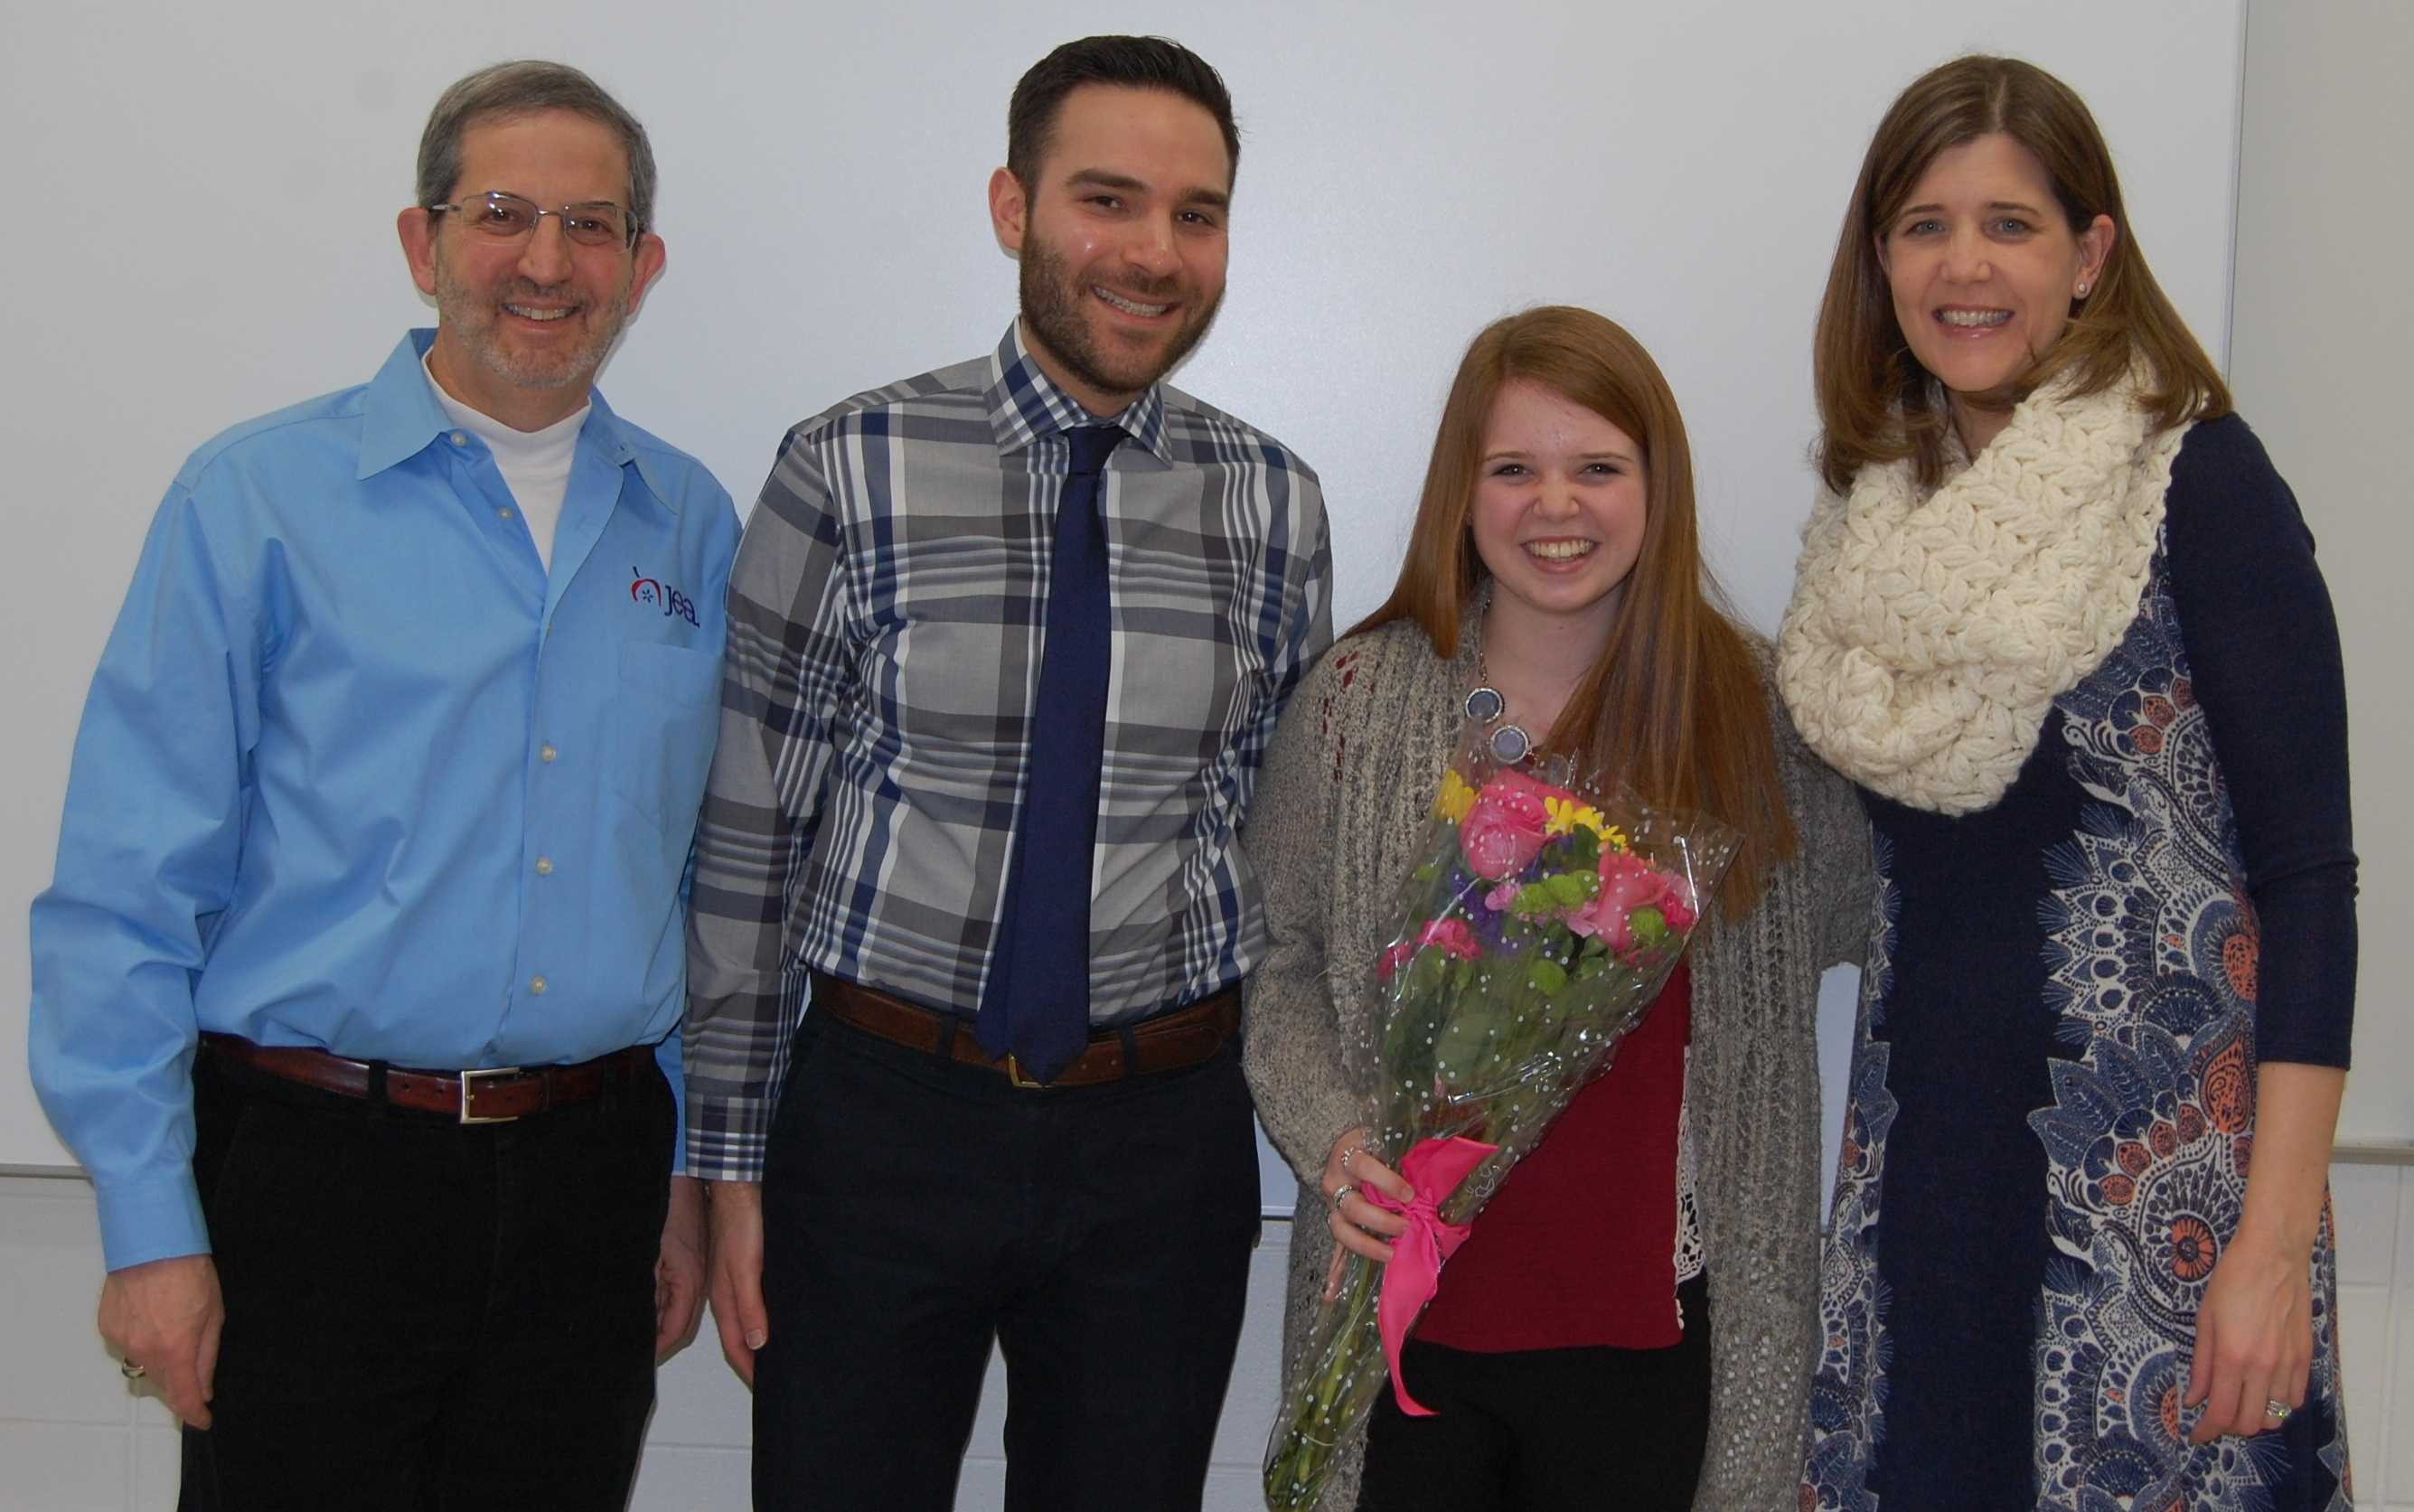 Hannah Boufford, IJEA's 2016 Illinois Journalist of the Year, is joined by (from left) Stan Zoller, East Region director of national JEA and an IJEA board member; Michael Gluskin, Libertyville H.S. Drops of Ink newsmagazine adviser; and Brenda Field, Illinois state director for national JEA and an IJEA board member. This photo was taken last March, when Stan and Brenda visited Libertyville High to inform Hannah of her award in person.